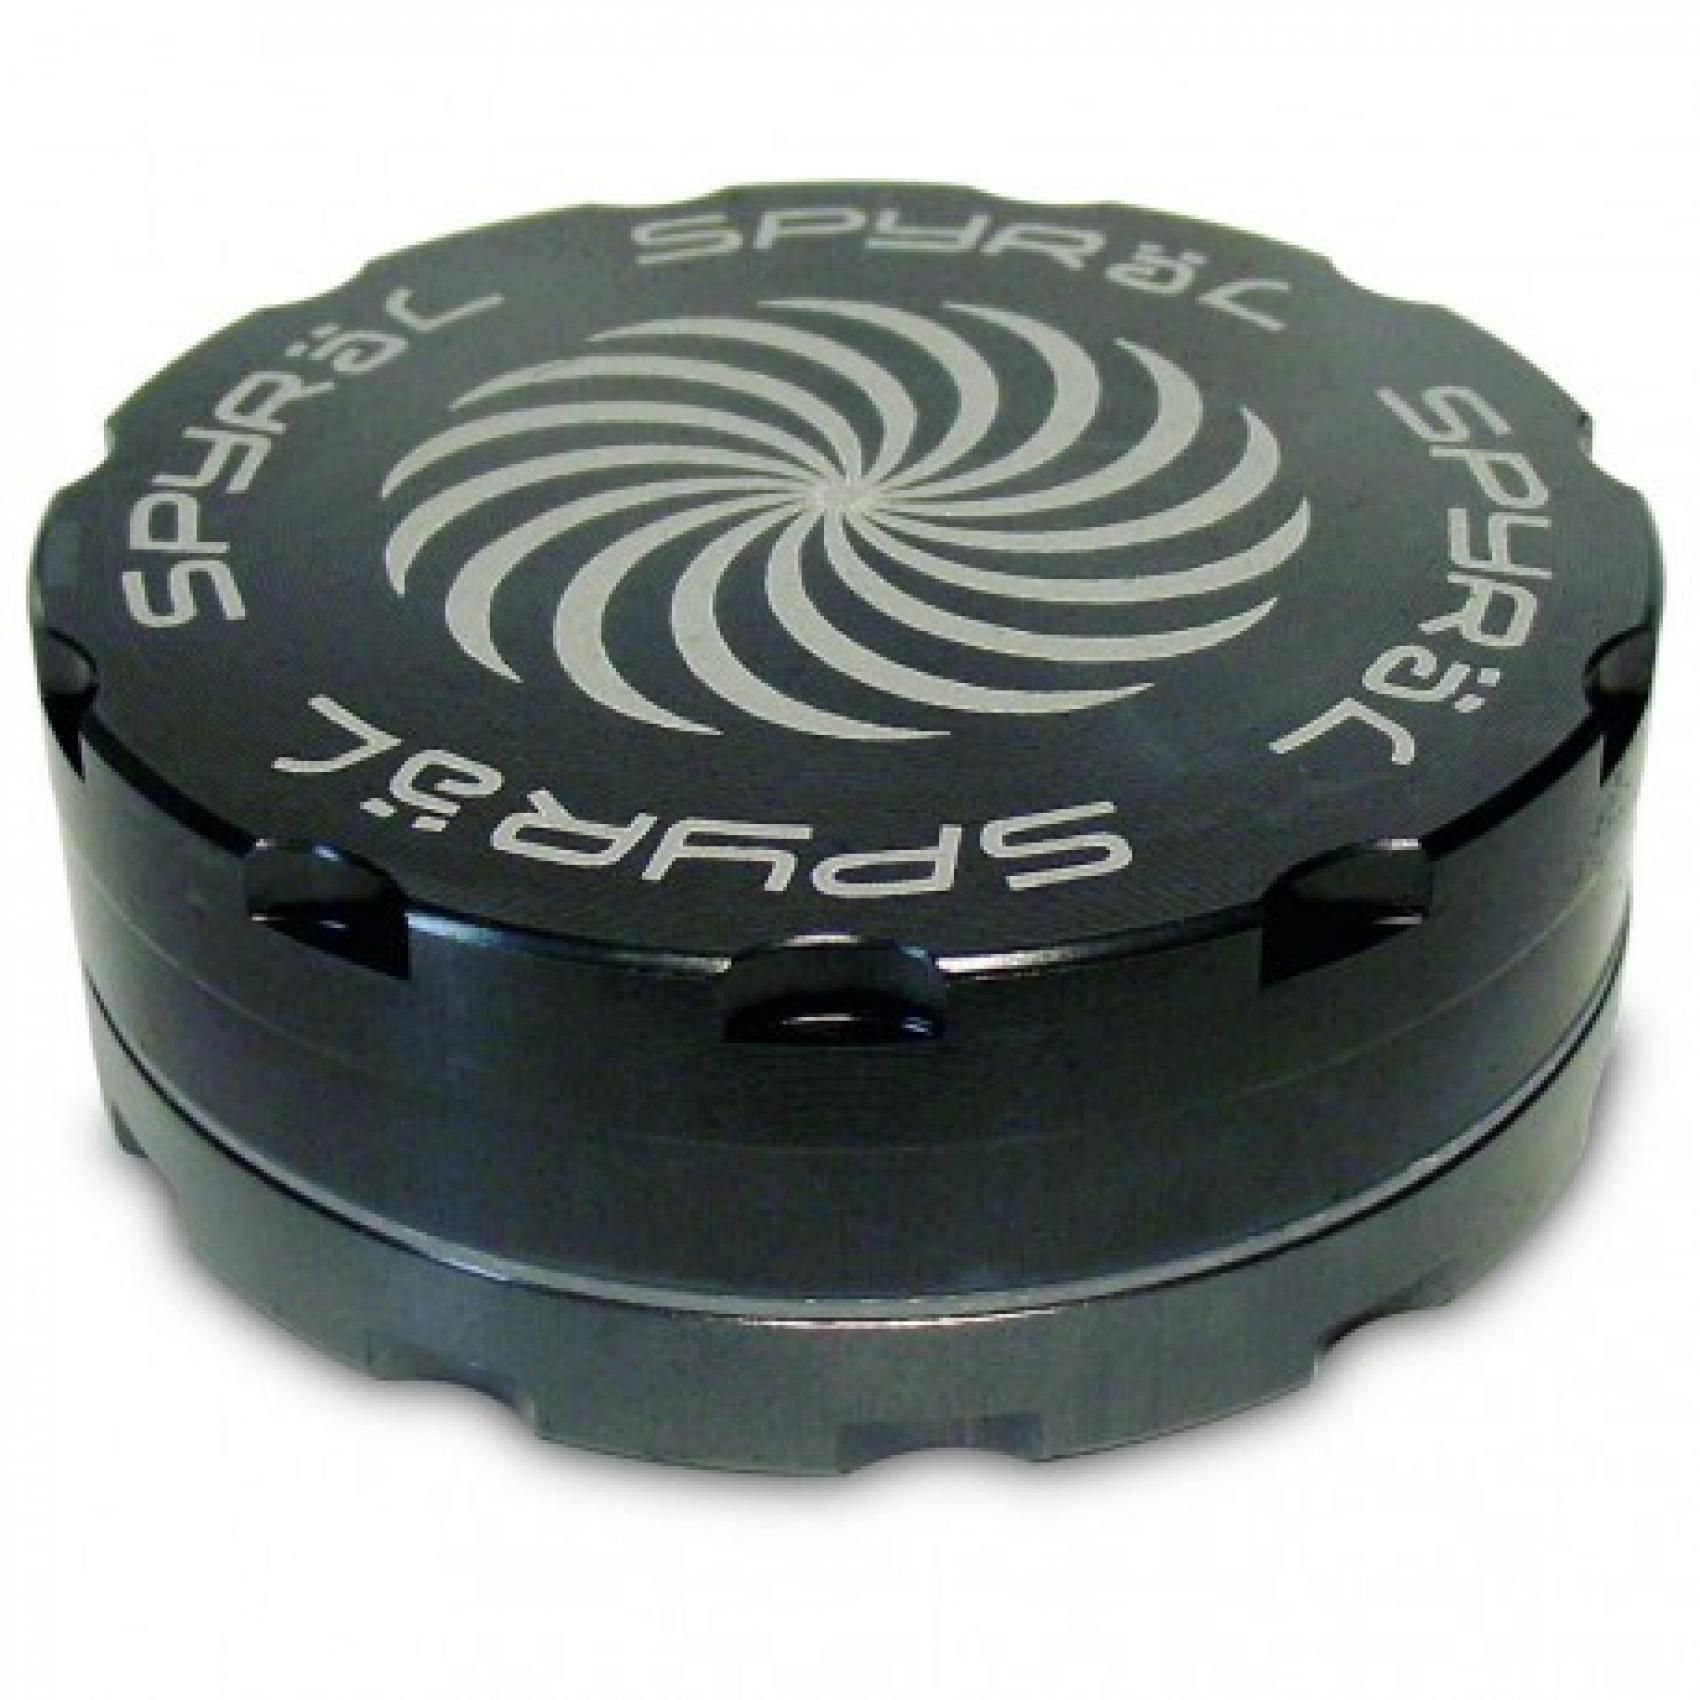 Spyräl Grinder 62mm black 2- part